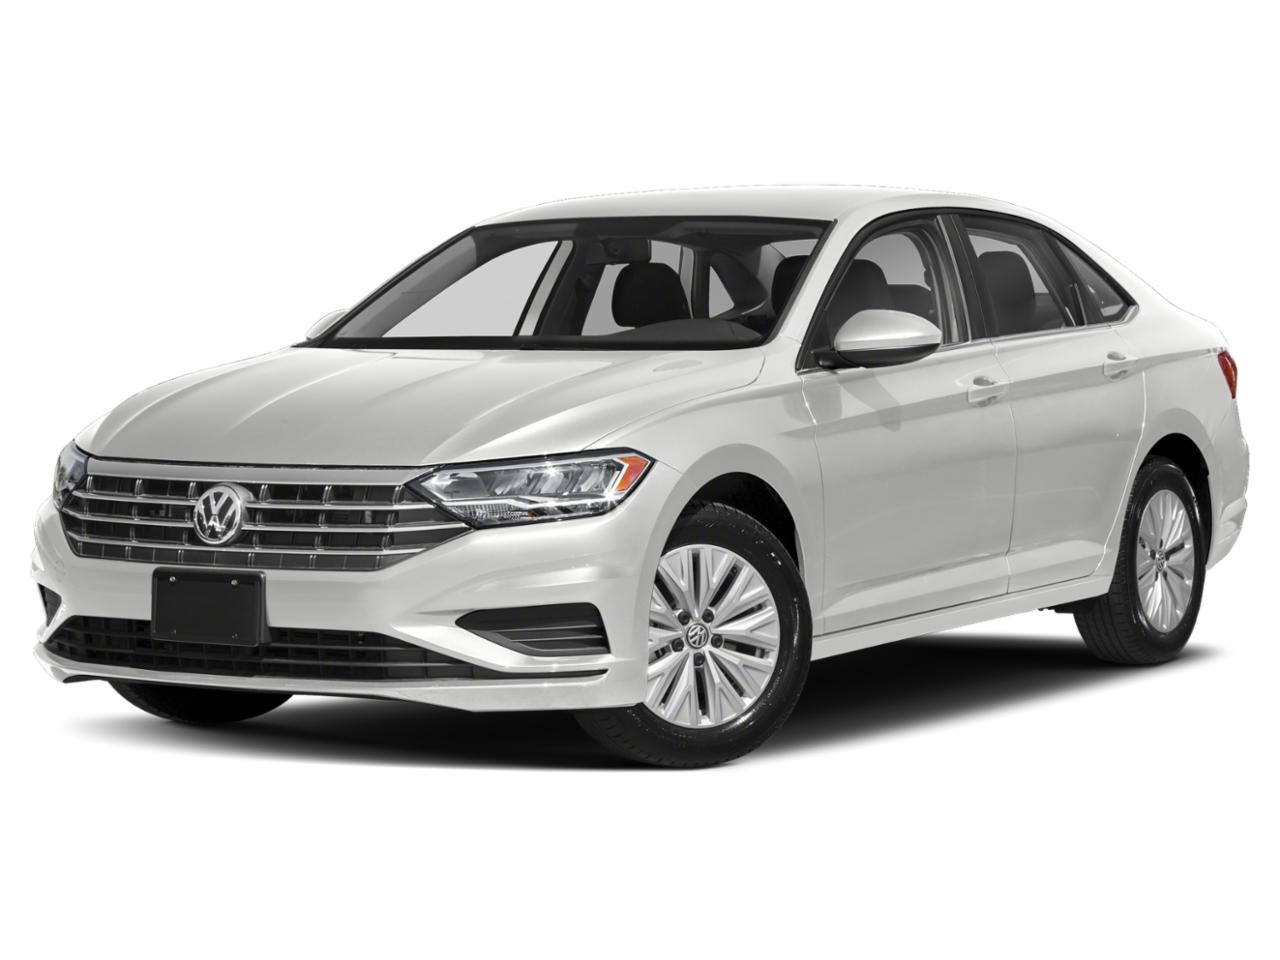 2020 Volkswagen Jetta Vehicle Photo in Oshkosh, WI 54904